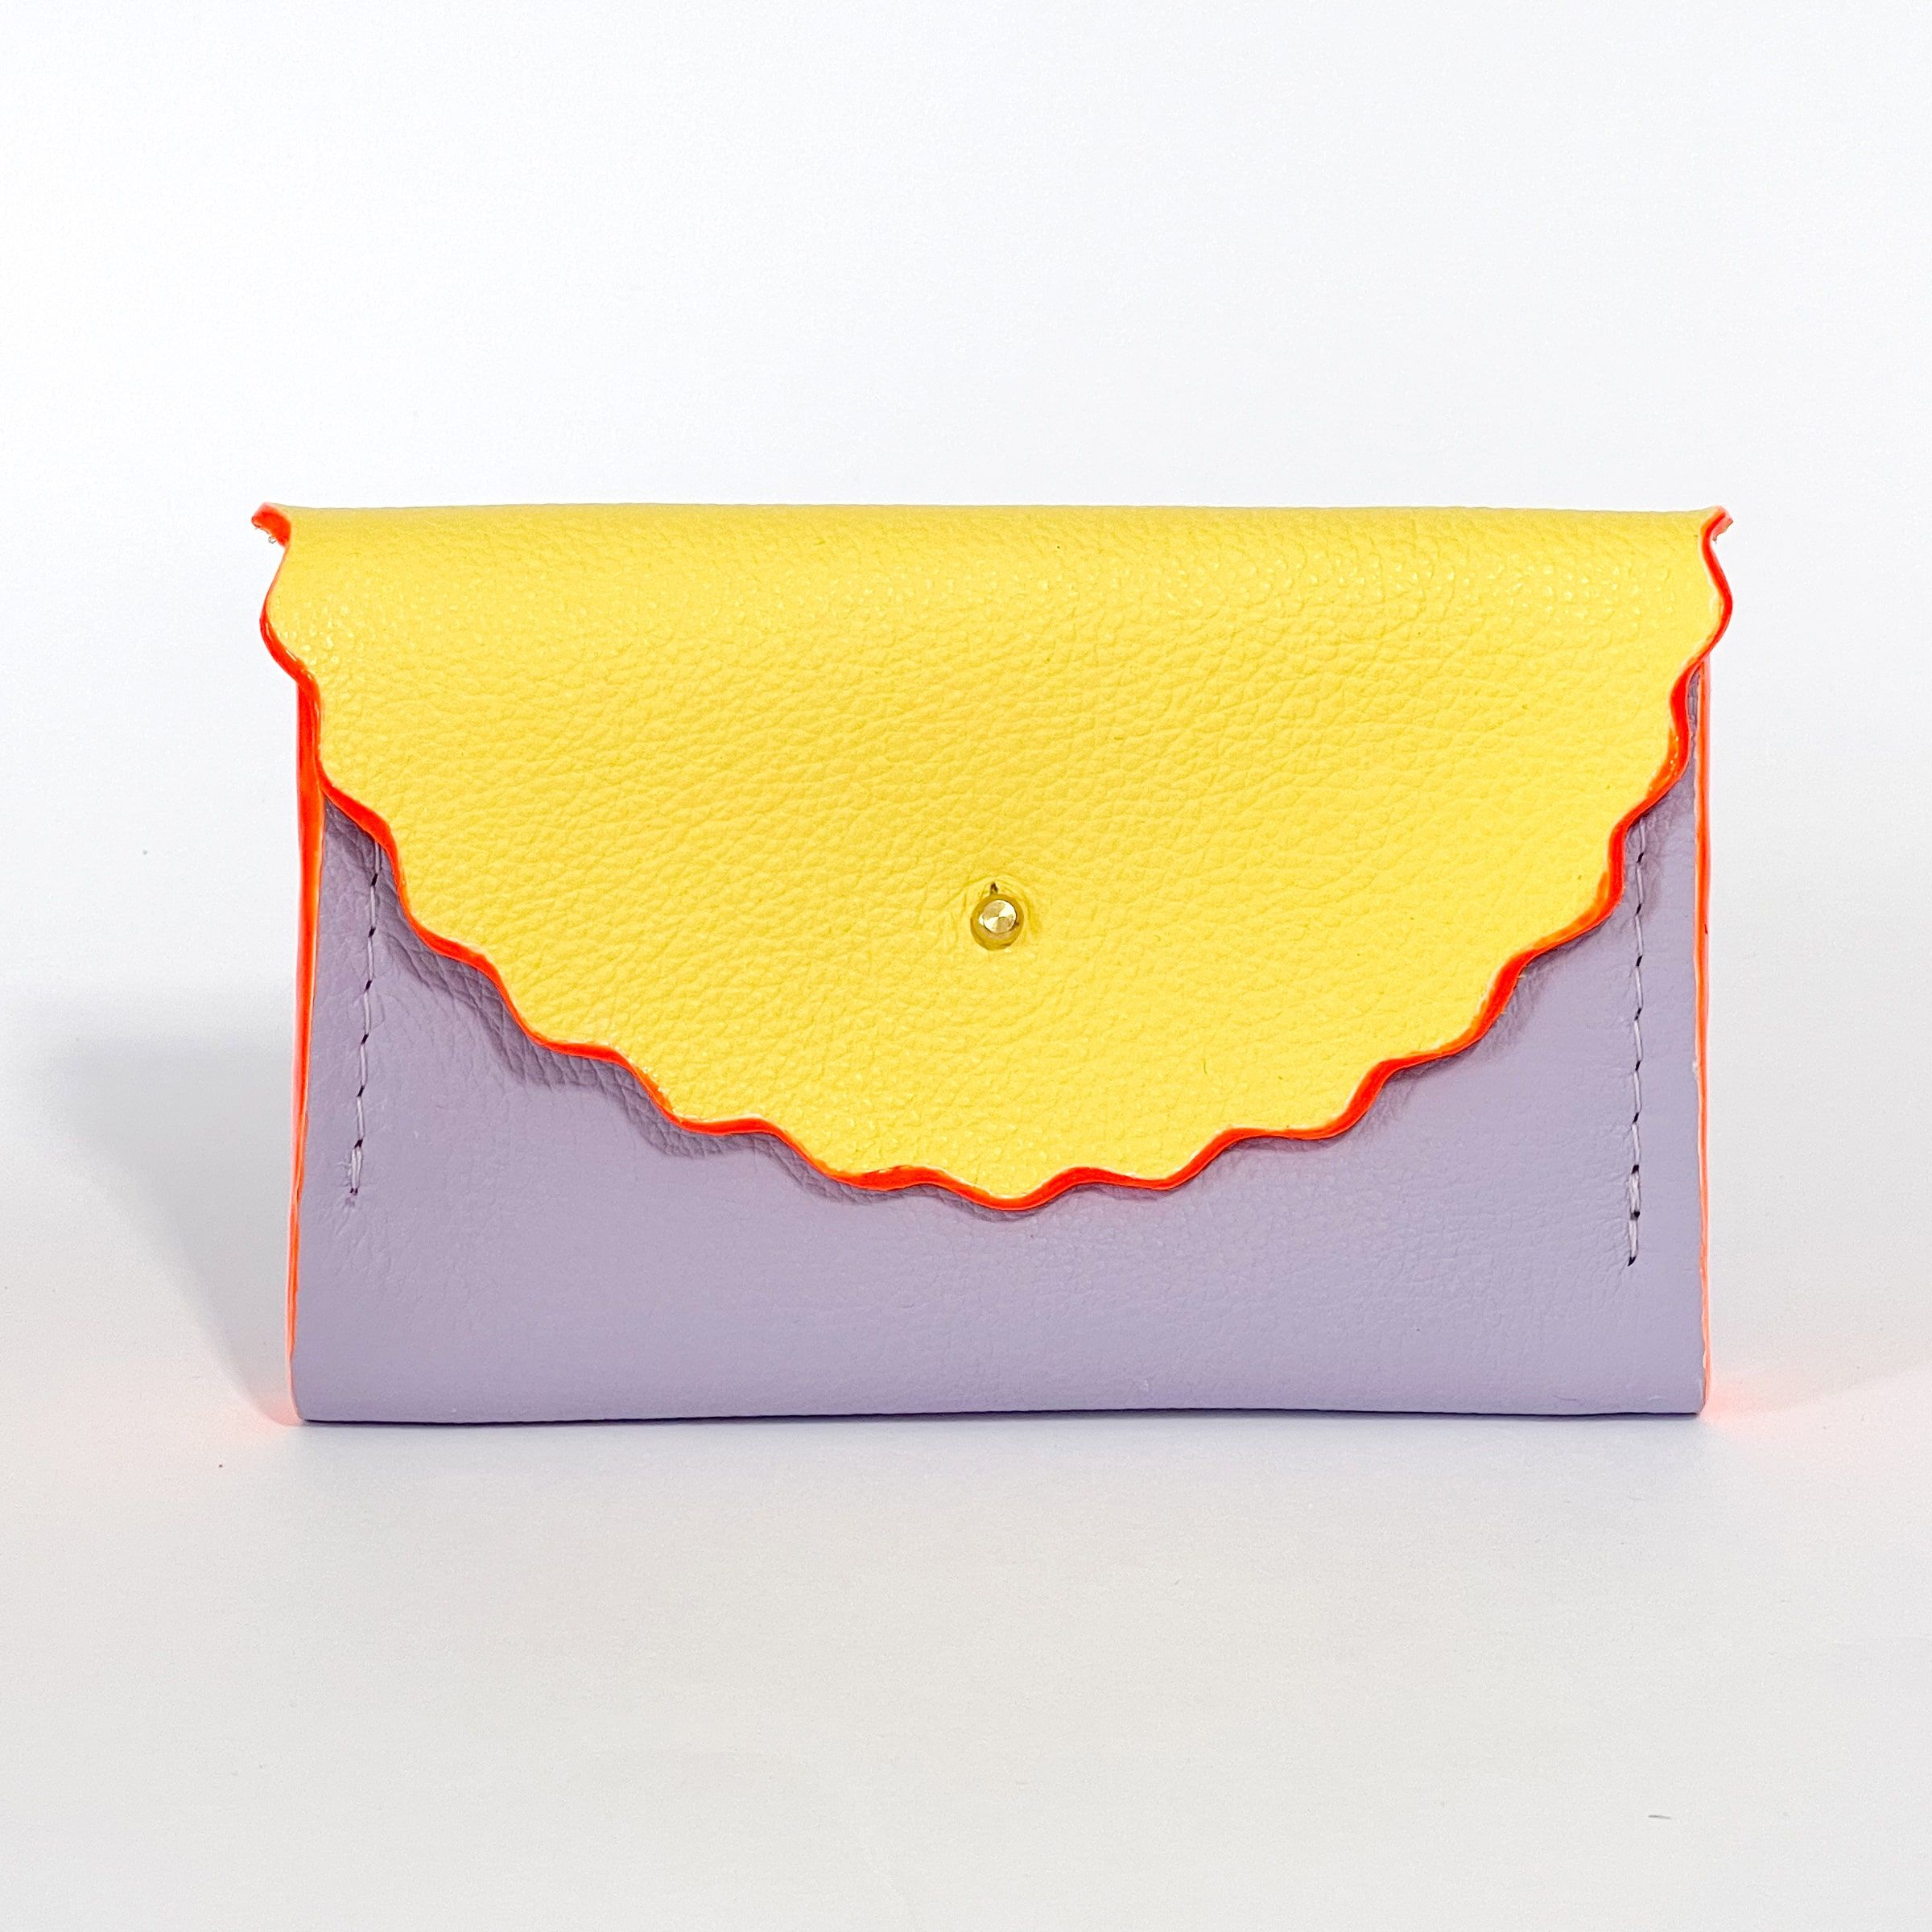 Dora Purse in Summer Yellow & Lilac with Neon Orange hand painted edges